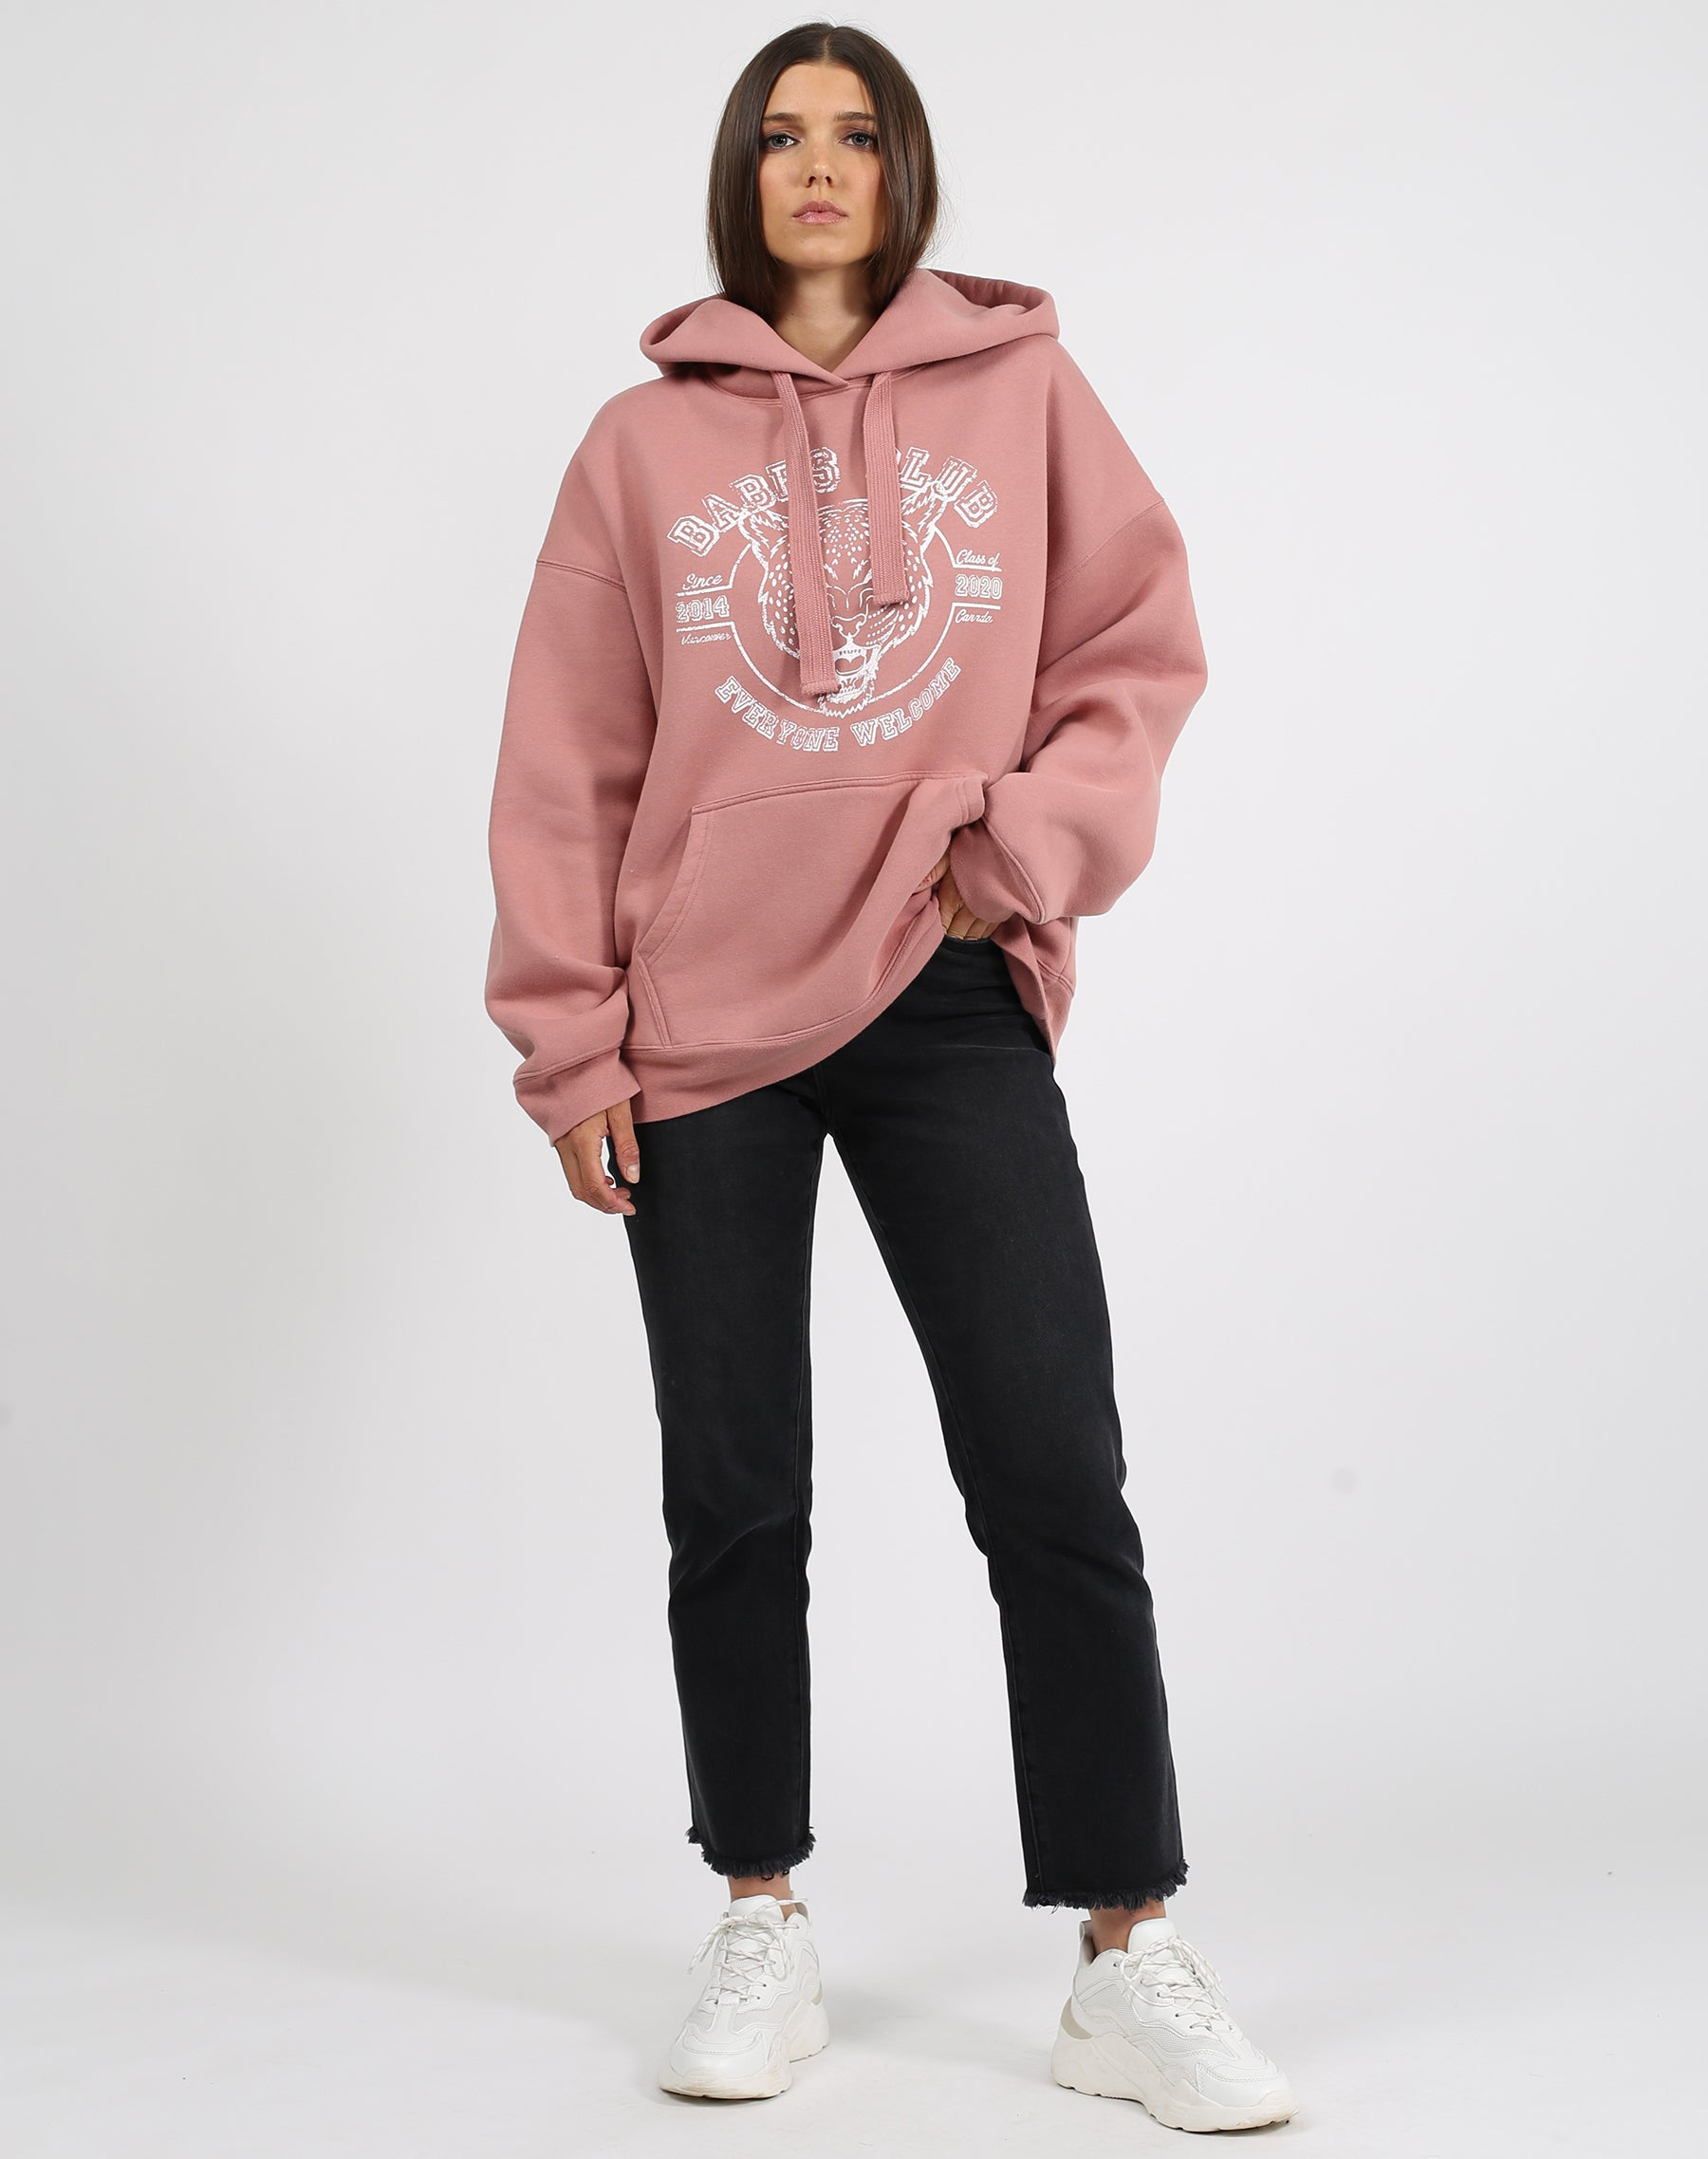 This is a photo of a model wearing the babes club leopard big sister hoodie in vintage rose by brunette the label.